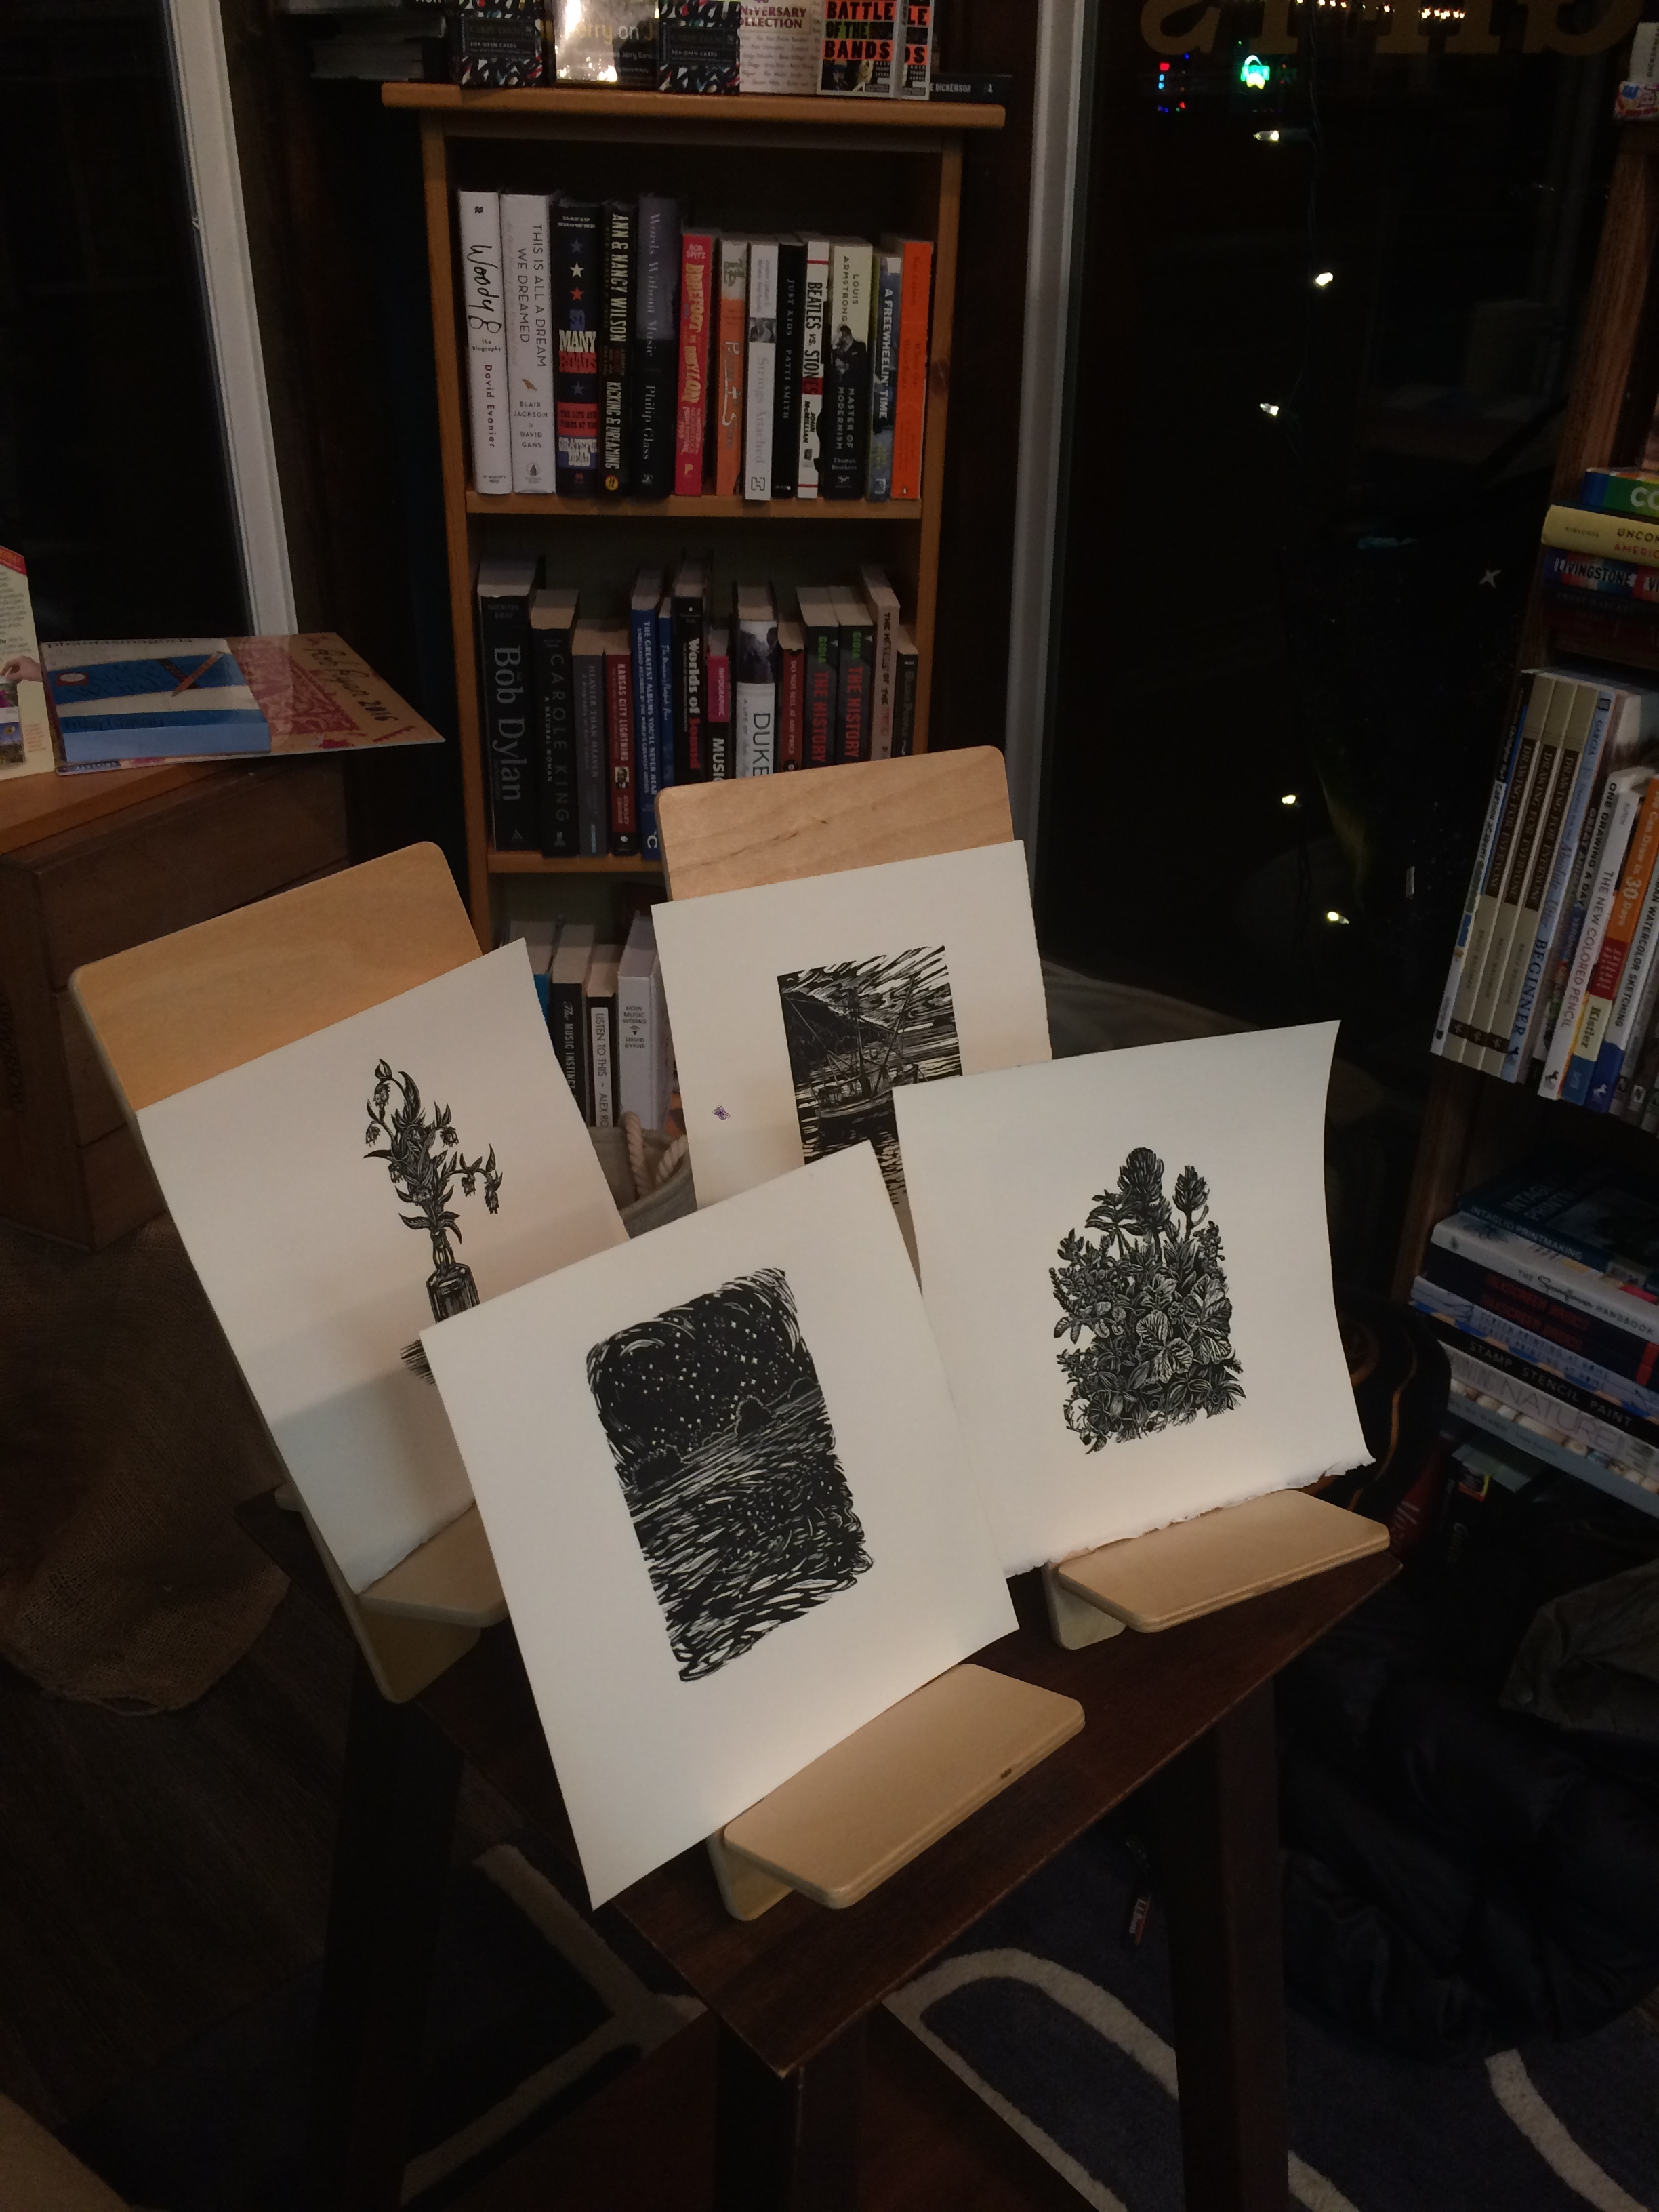 Rebecca Poulson's Wood engravings that appear in the book. (Photo: Loren Waxman)